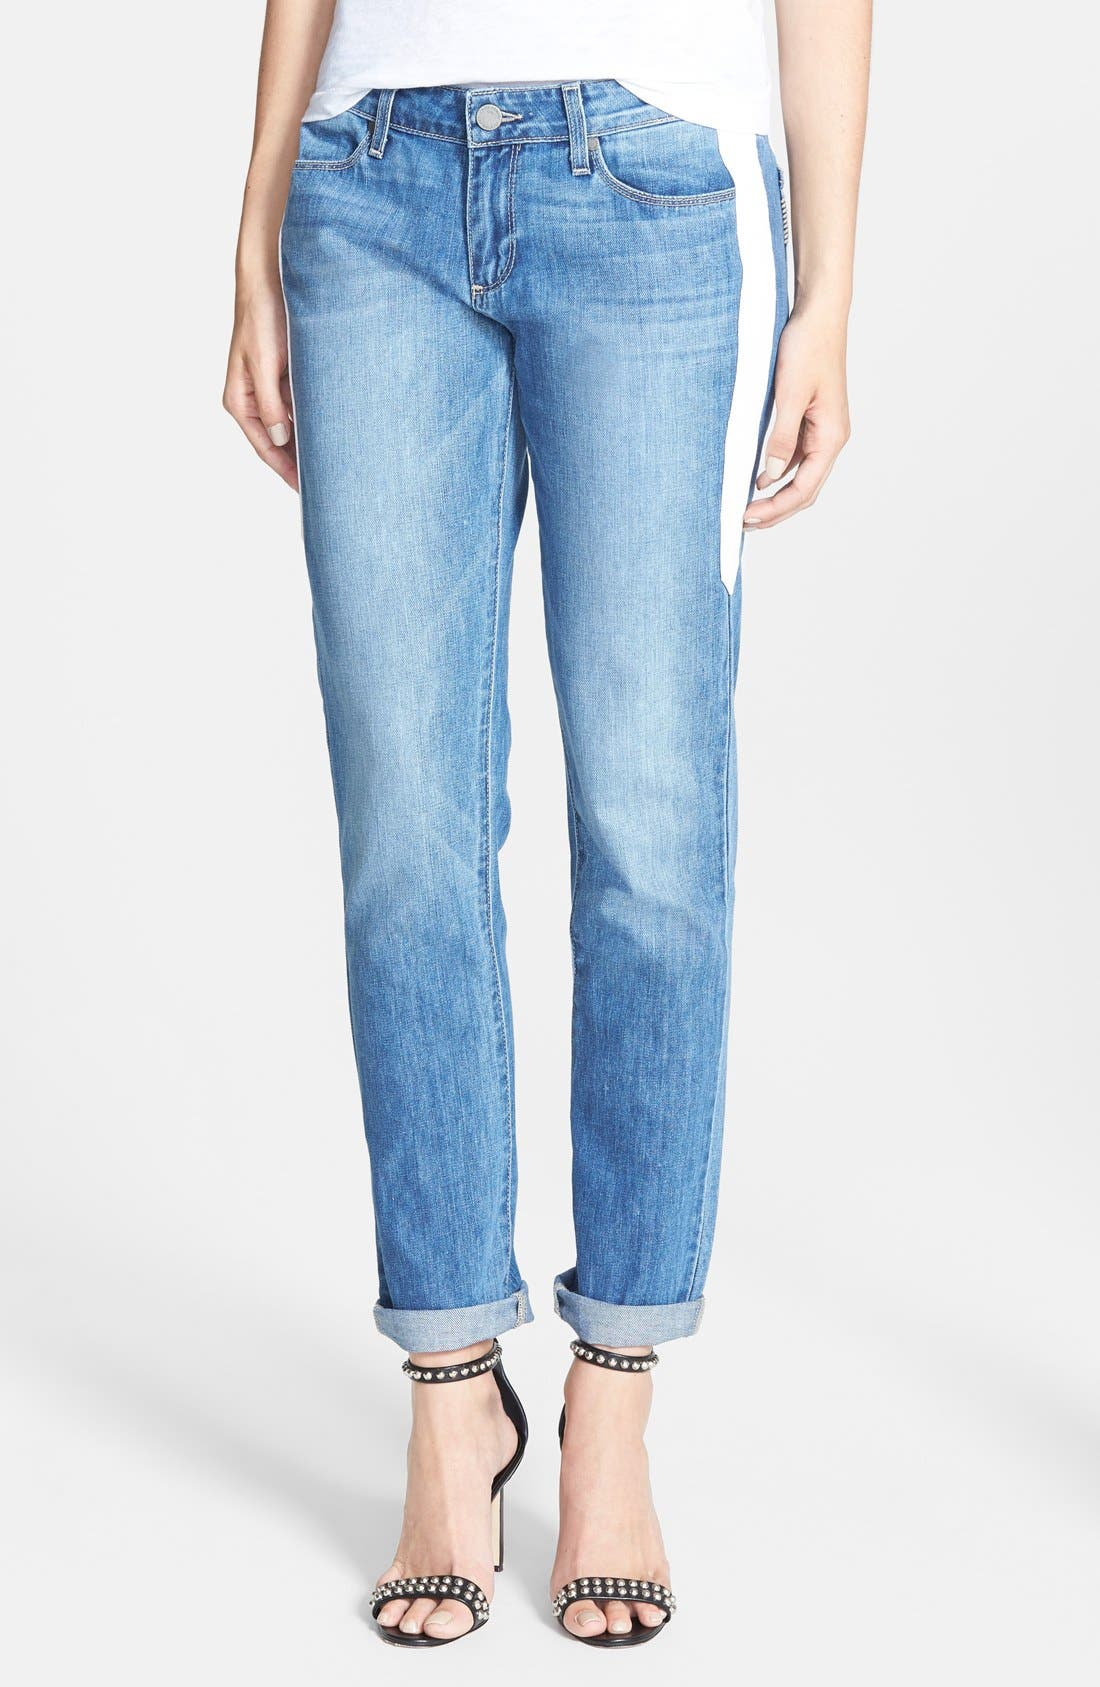 Main Image - Paige Denim 'Jimmy Jimmy' Leather Stripe Skinny Boyfriend Jeans (Indigo Dart)